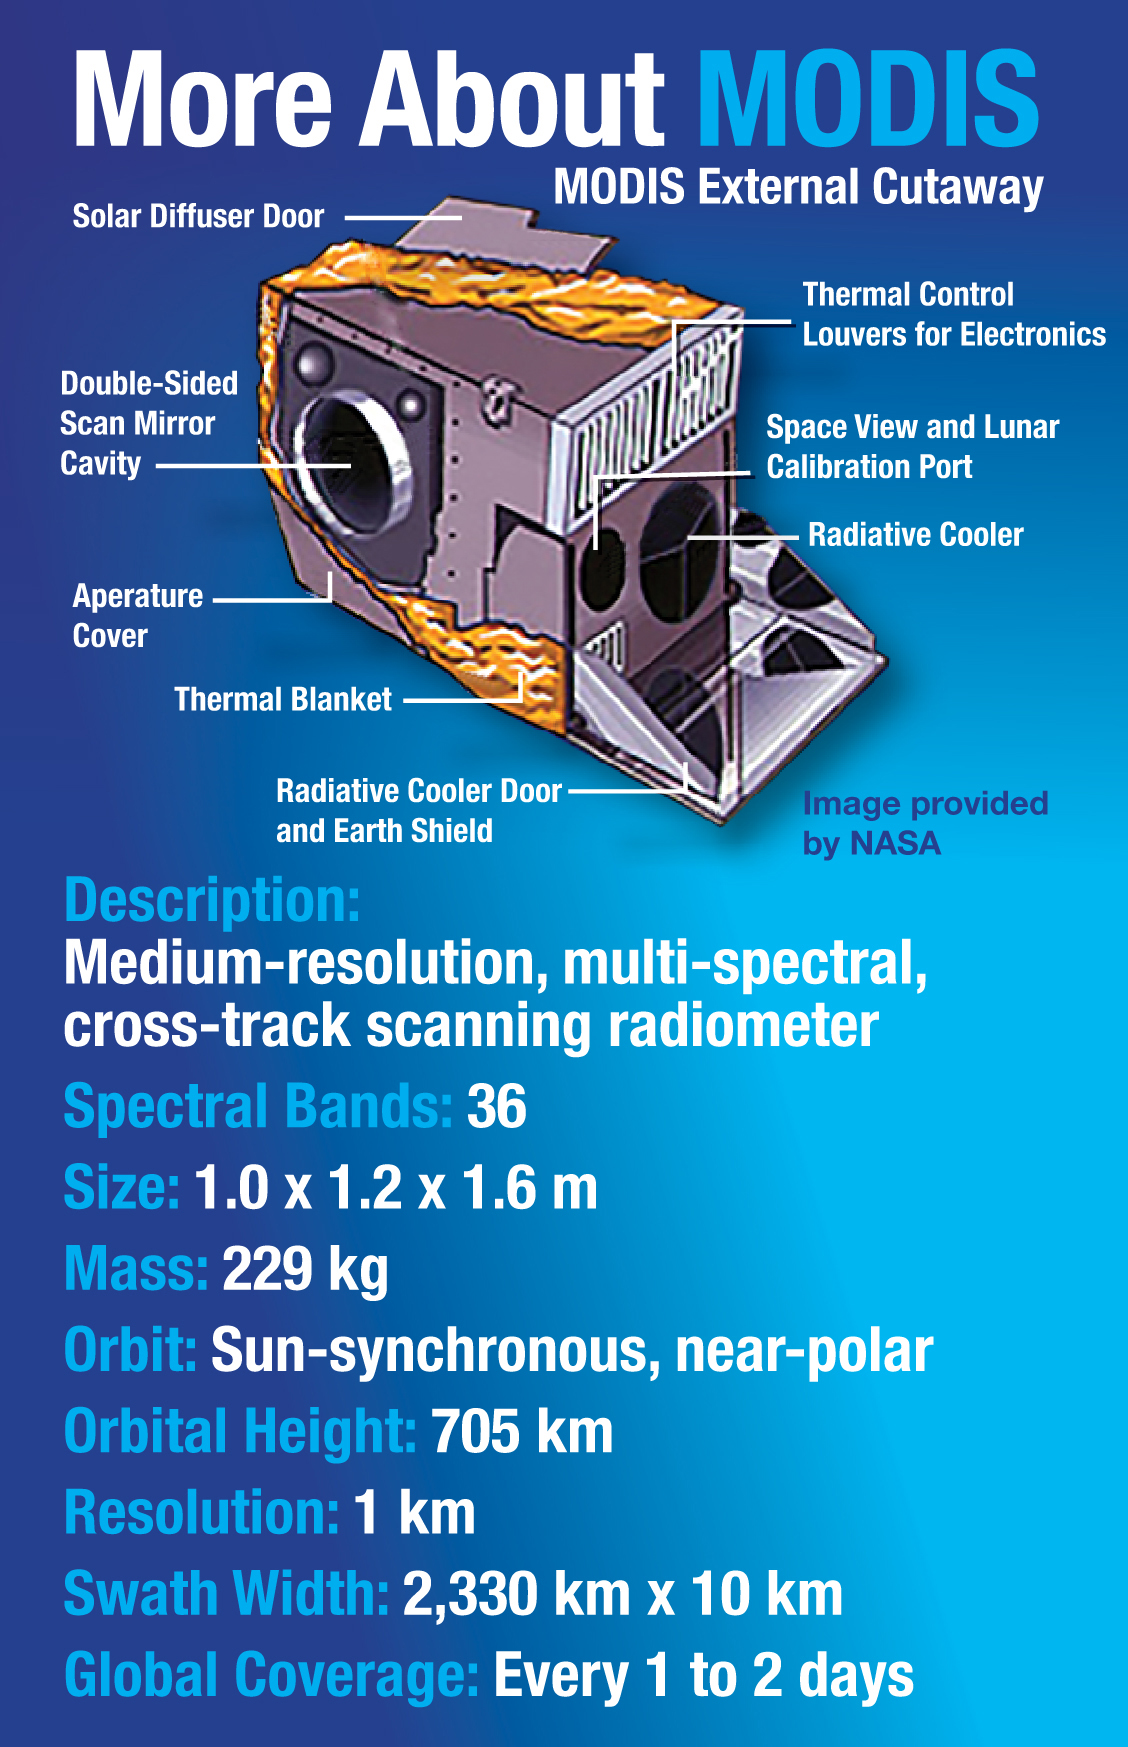 More About MODIS